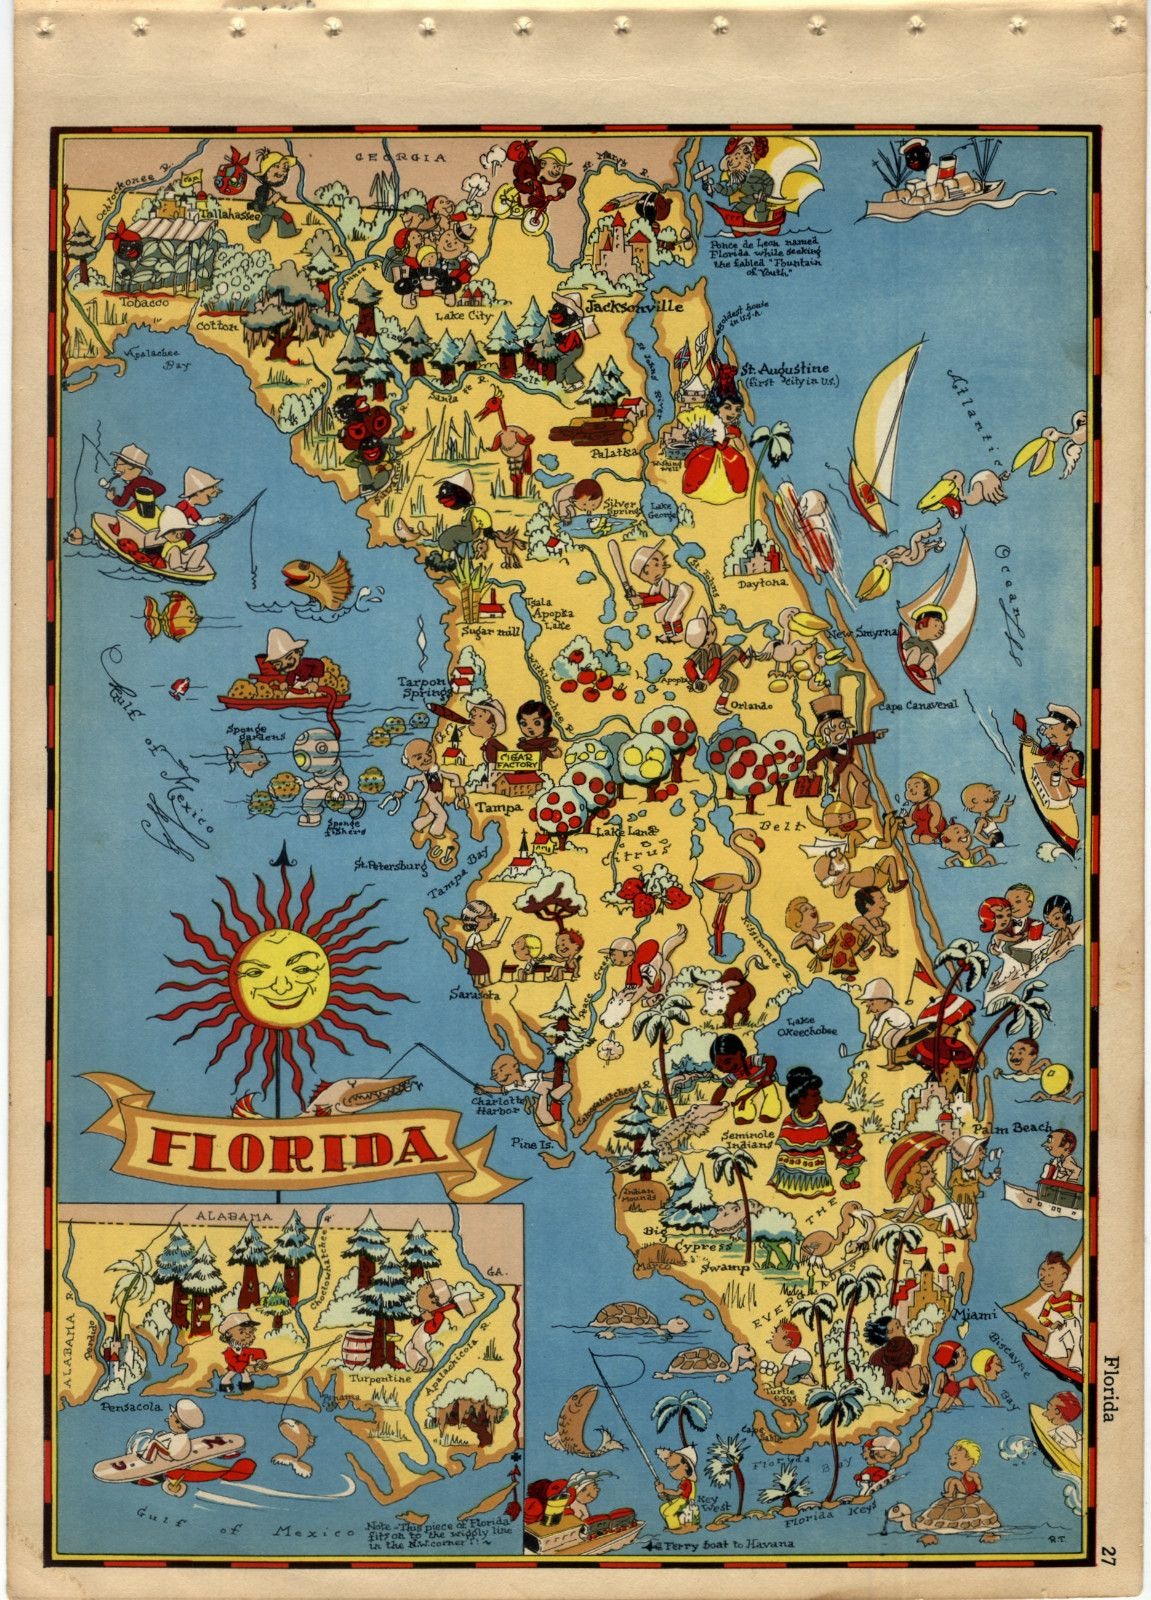 Old Florida Maps.Vintage Florida Map Obsessed With Maps Pinterest Florida